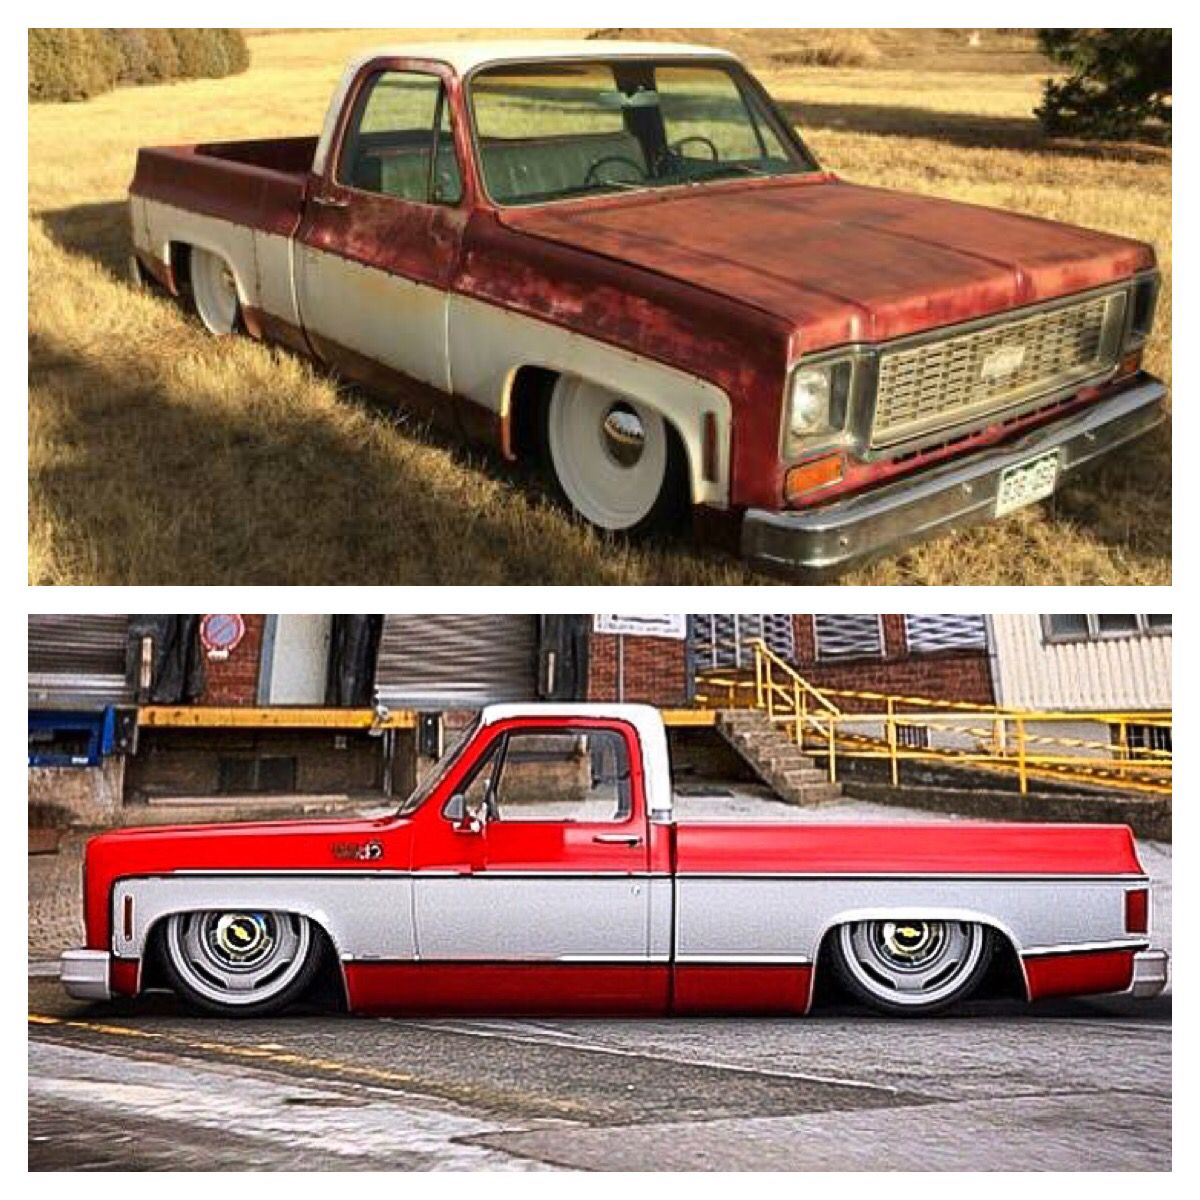 All Chevy c 10 chevy : 1974 c-10 | Bagged Chevy/GMC | Pinterest | C10 trucks, Cars and ...